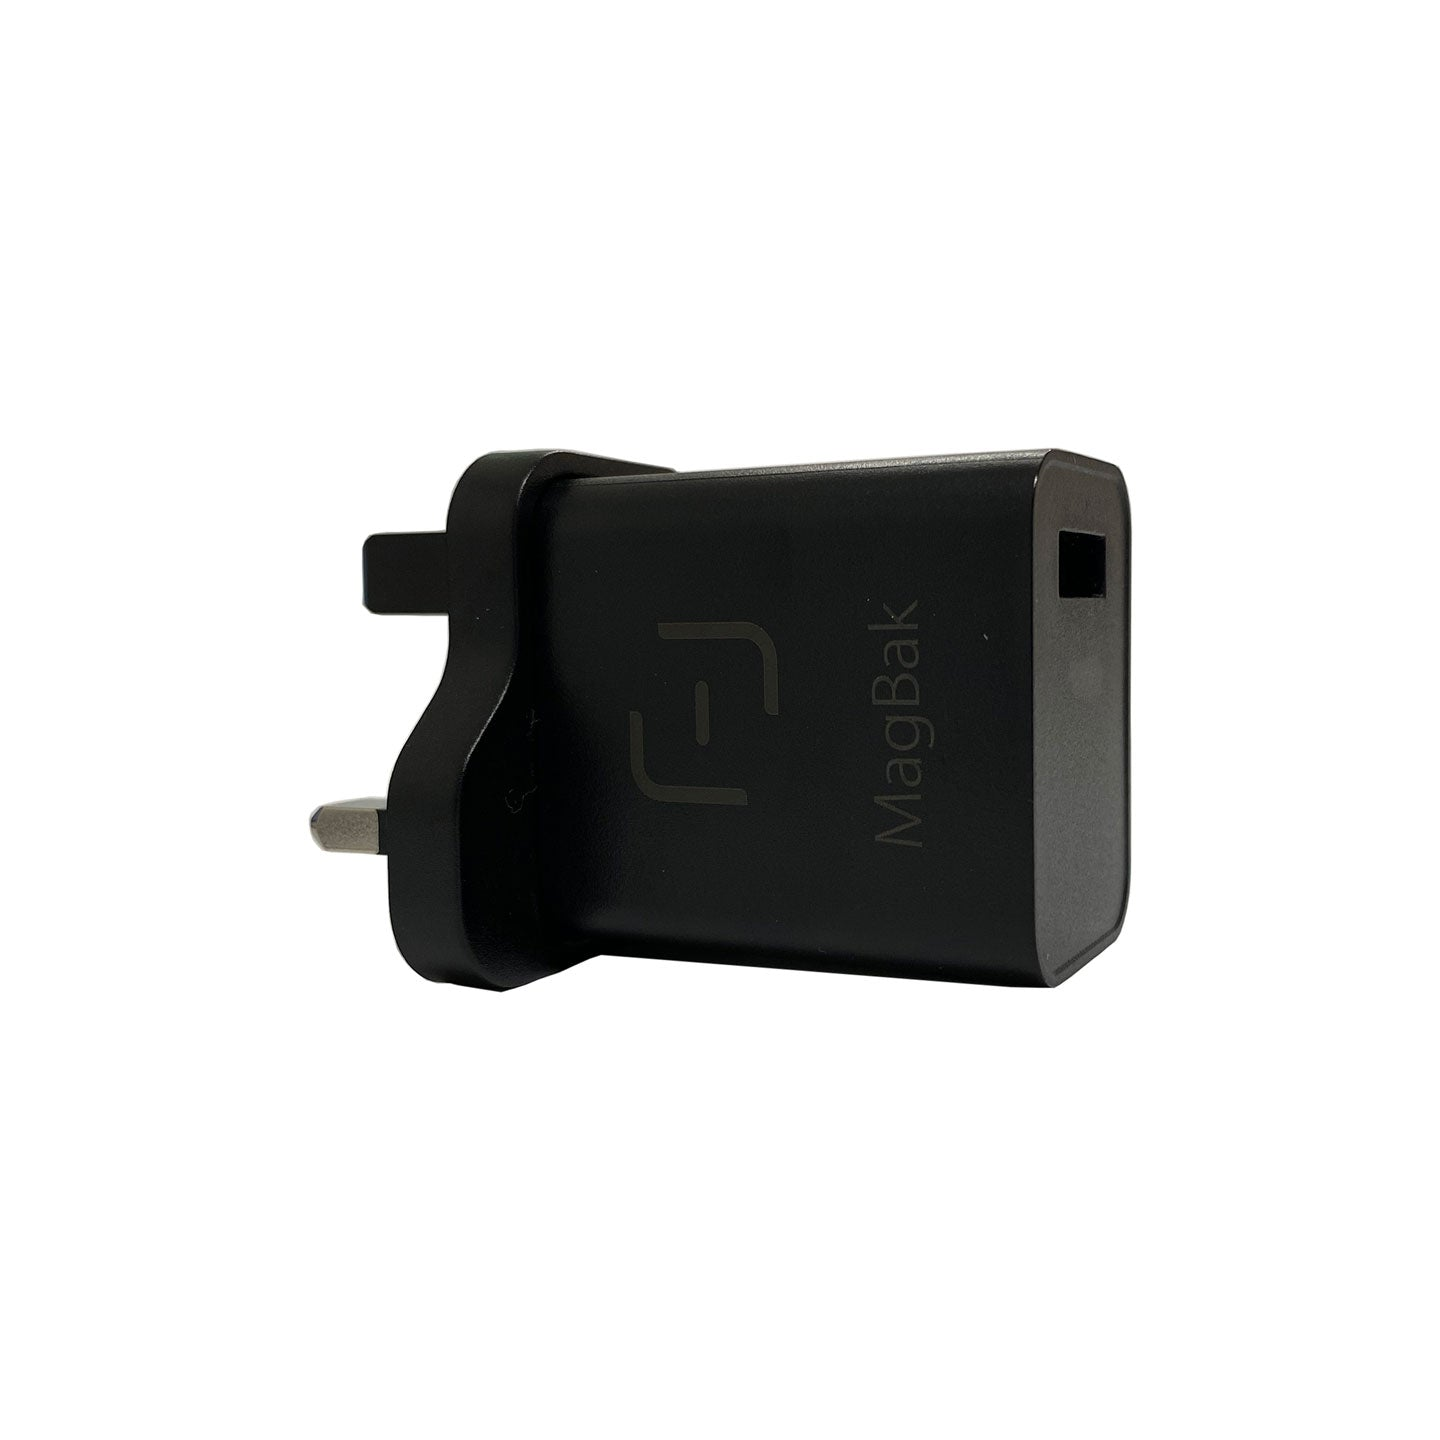 USB Charger - Home UK